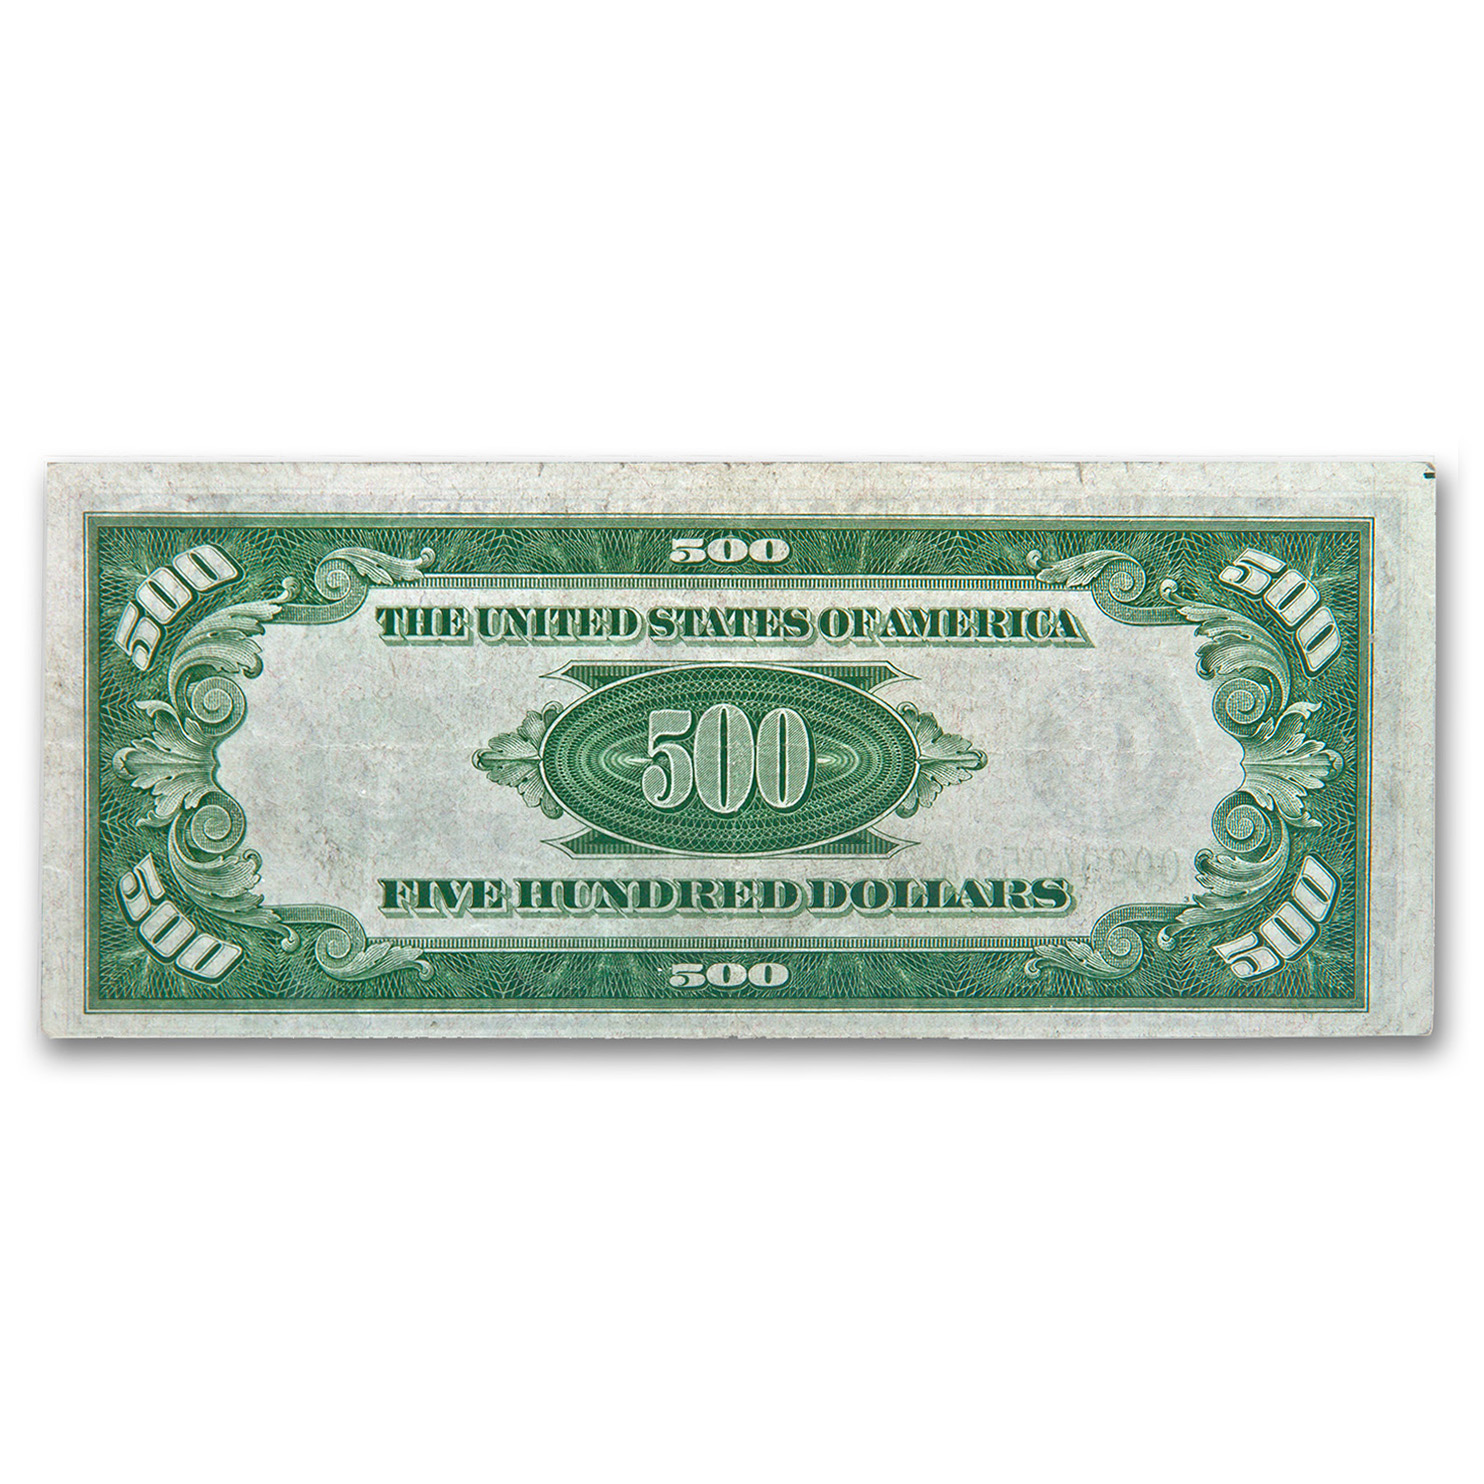 1934/34-A $500 FRN VF - (Districts of Our Choice)